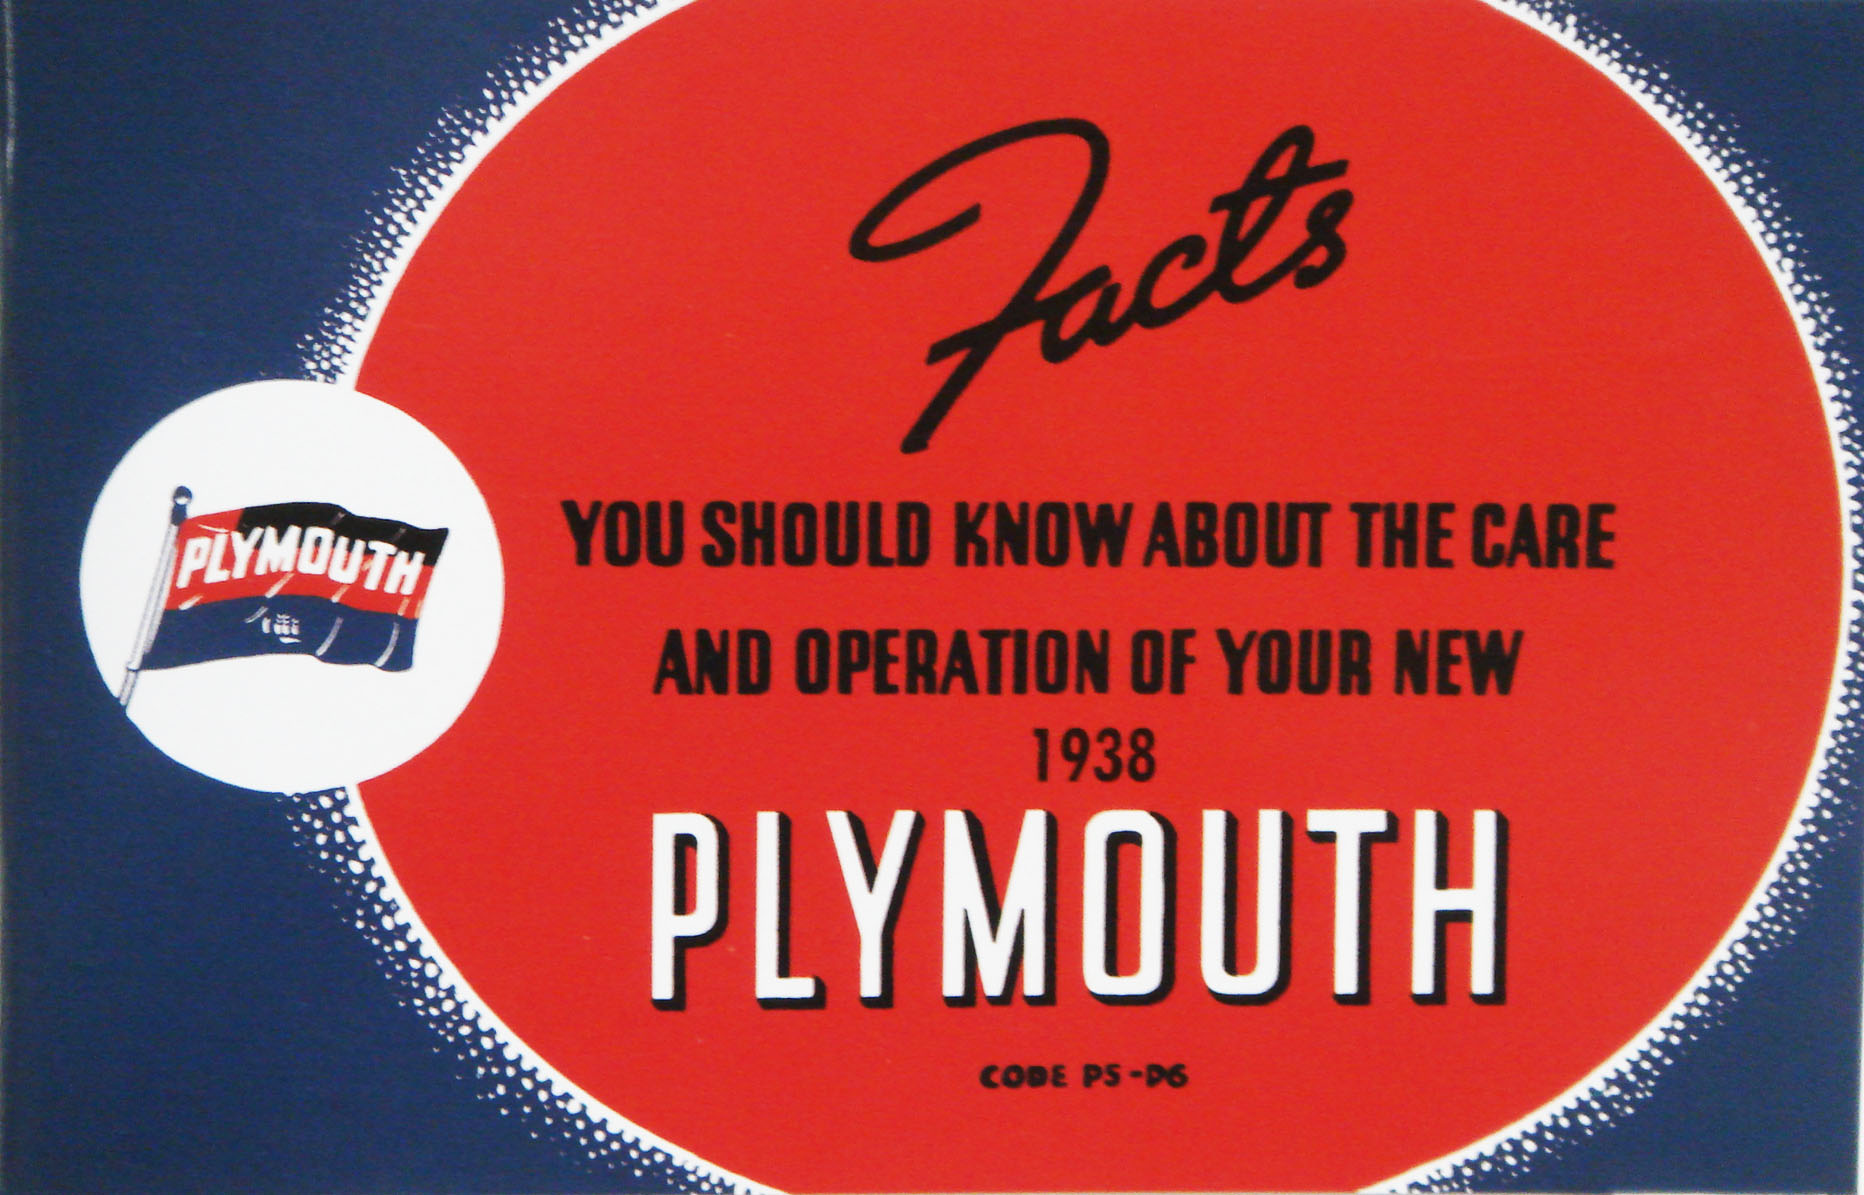 1938 Plymouth Owner's Manual,P5-D6